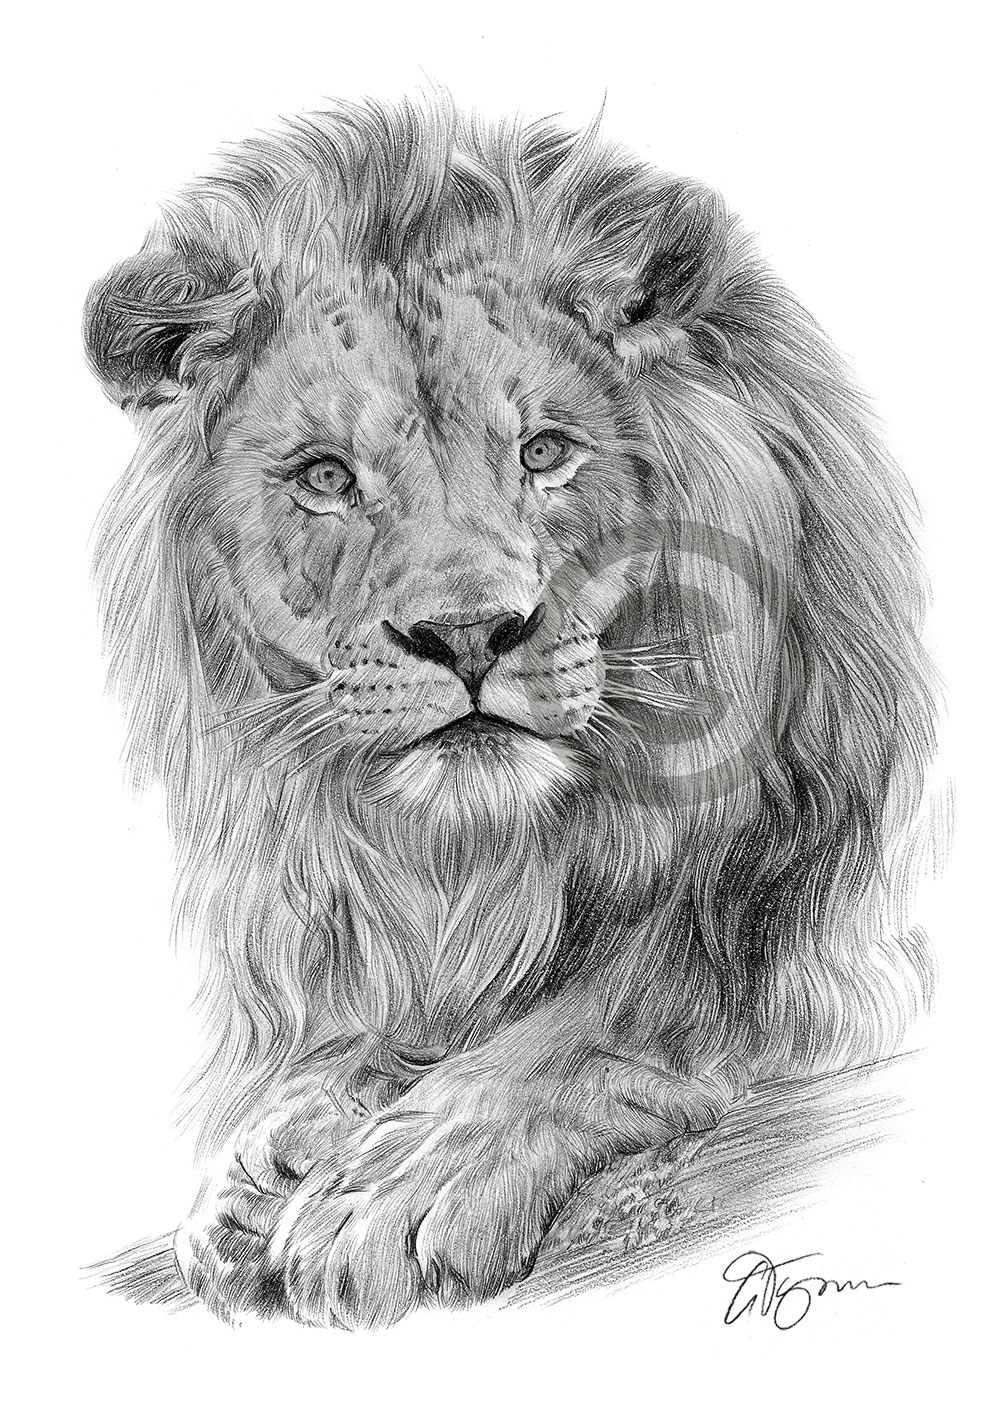 Lion pencil drawing by artist gary tymon